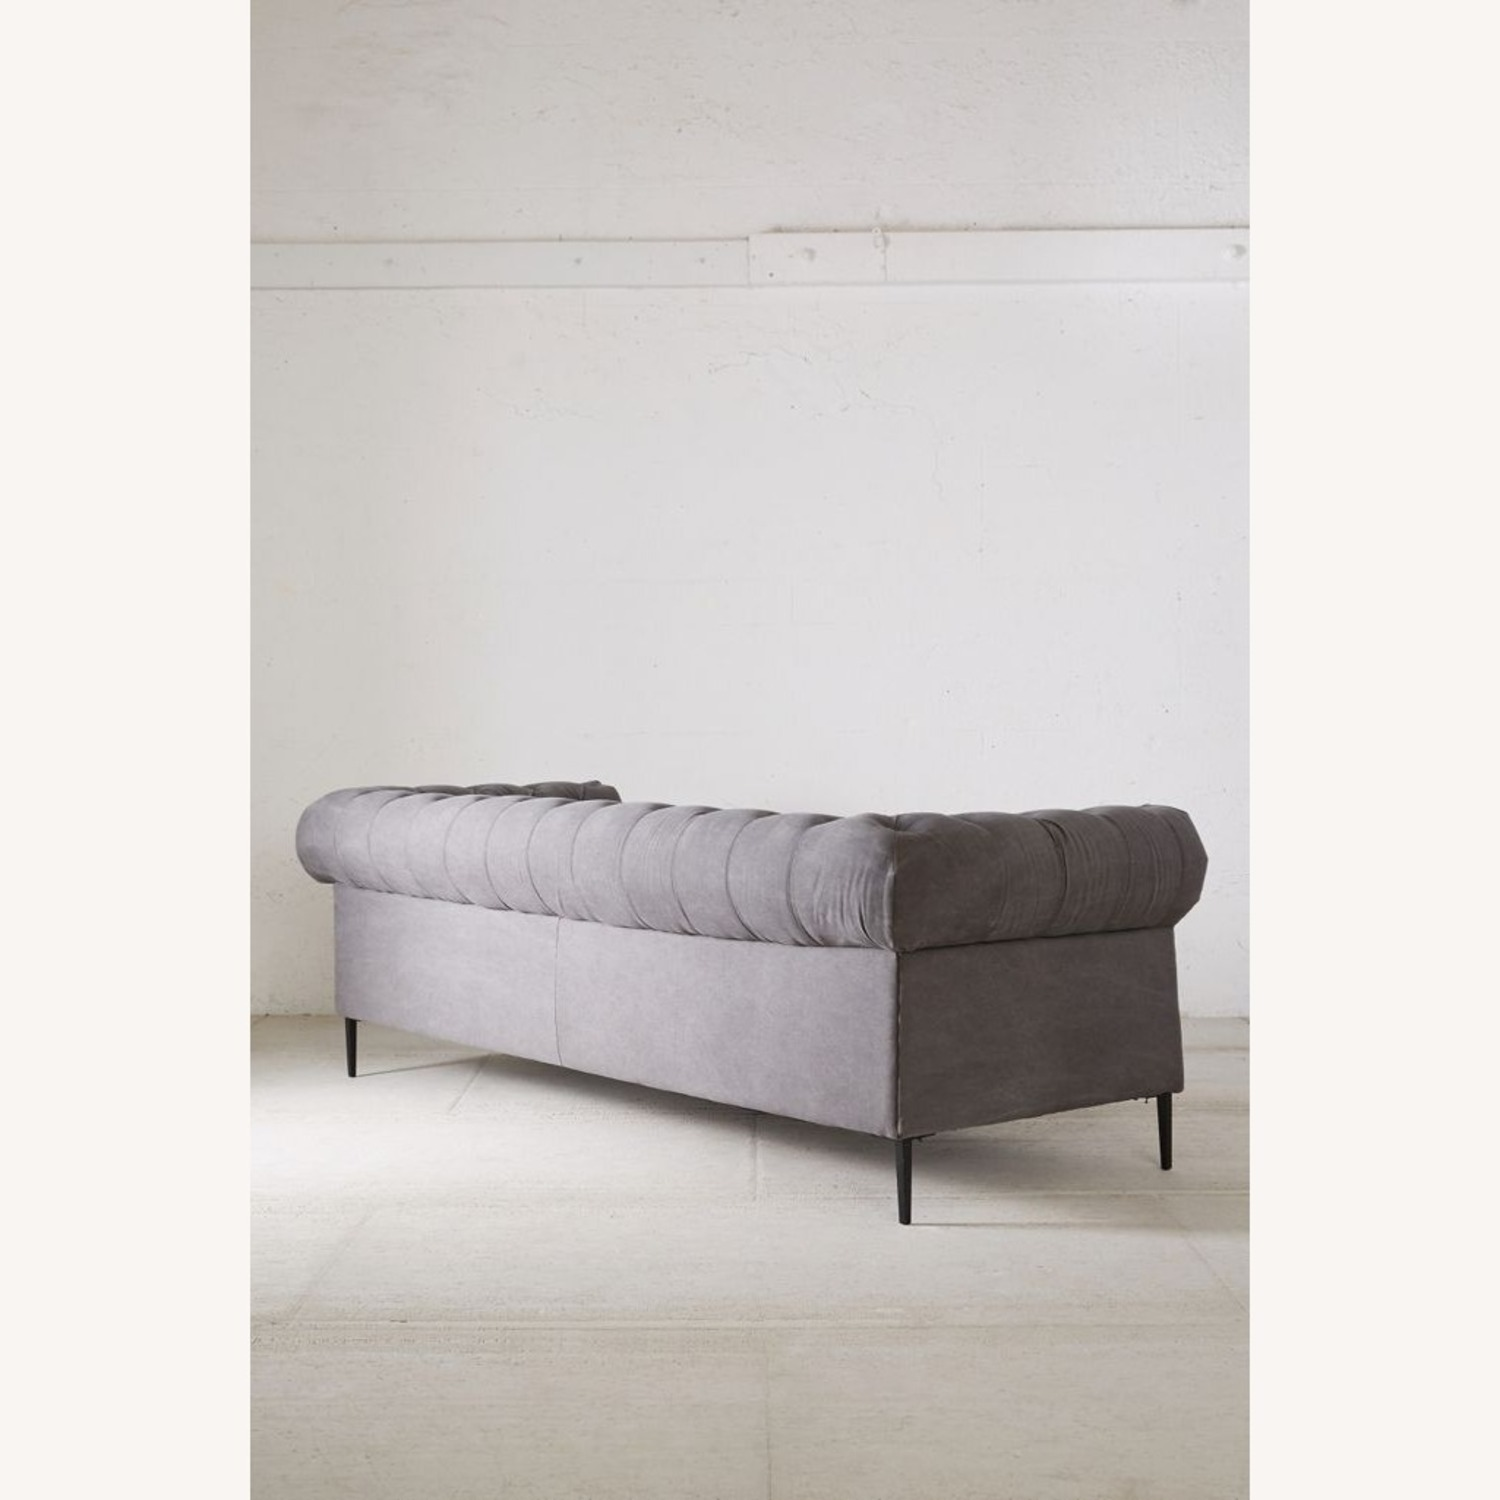 Anthropologie Canal Tufted Sofa - image-4